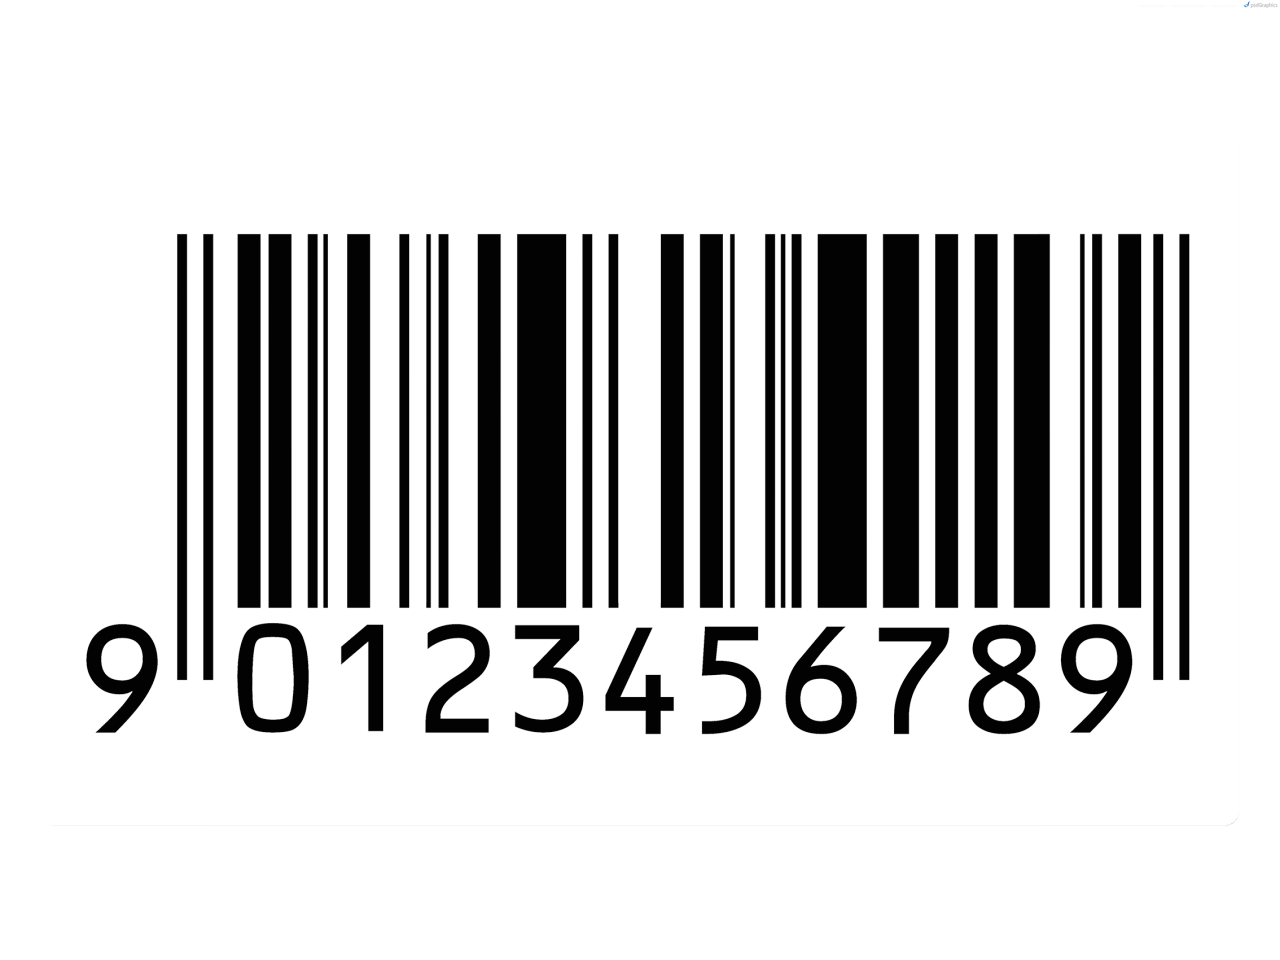 Fashion magazine png. Creative free source barcode